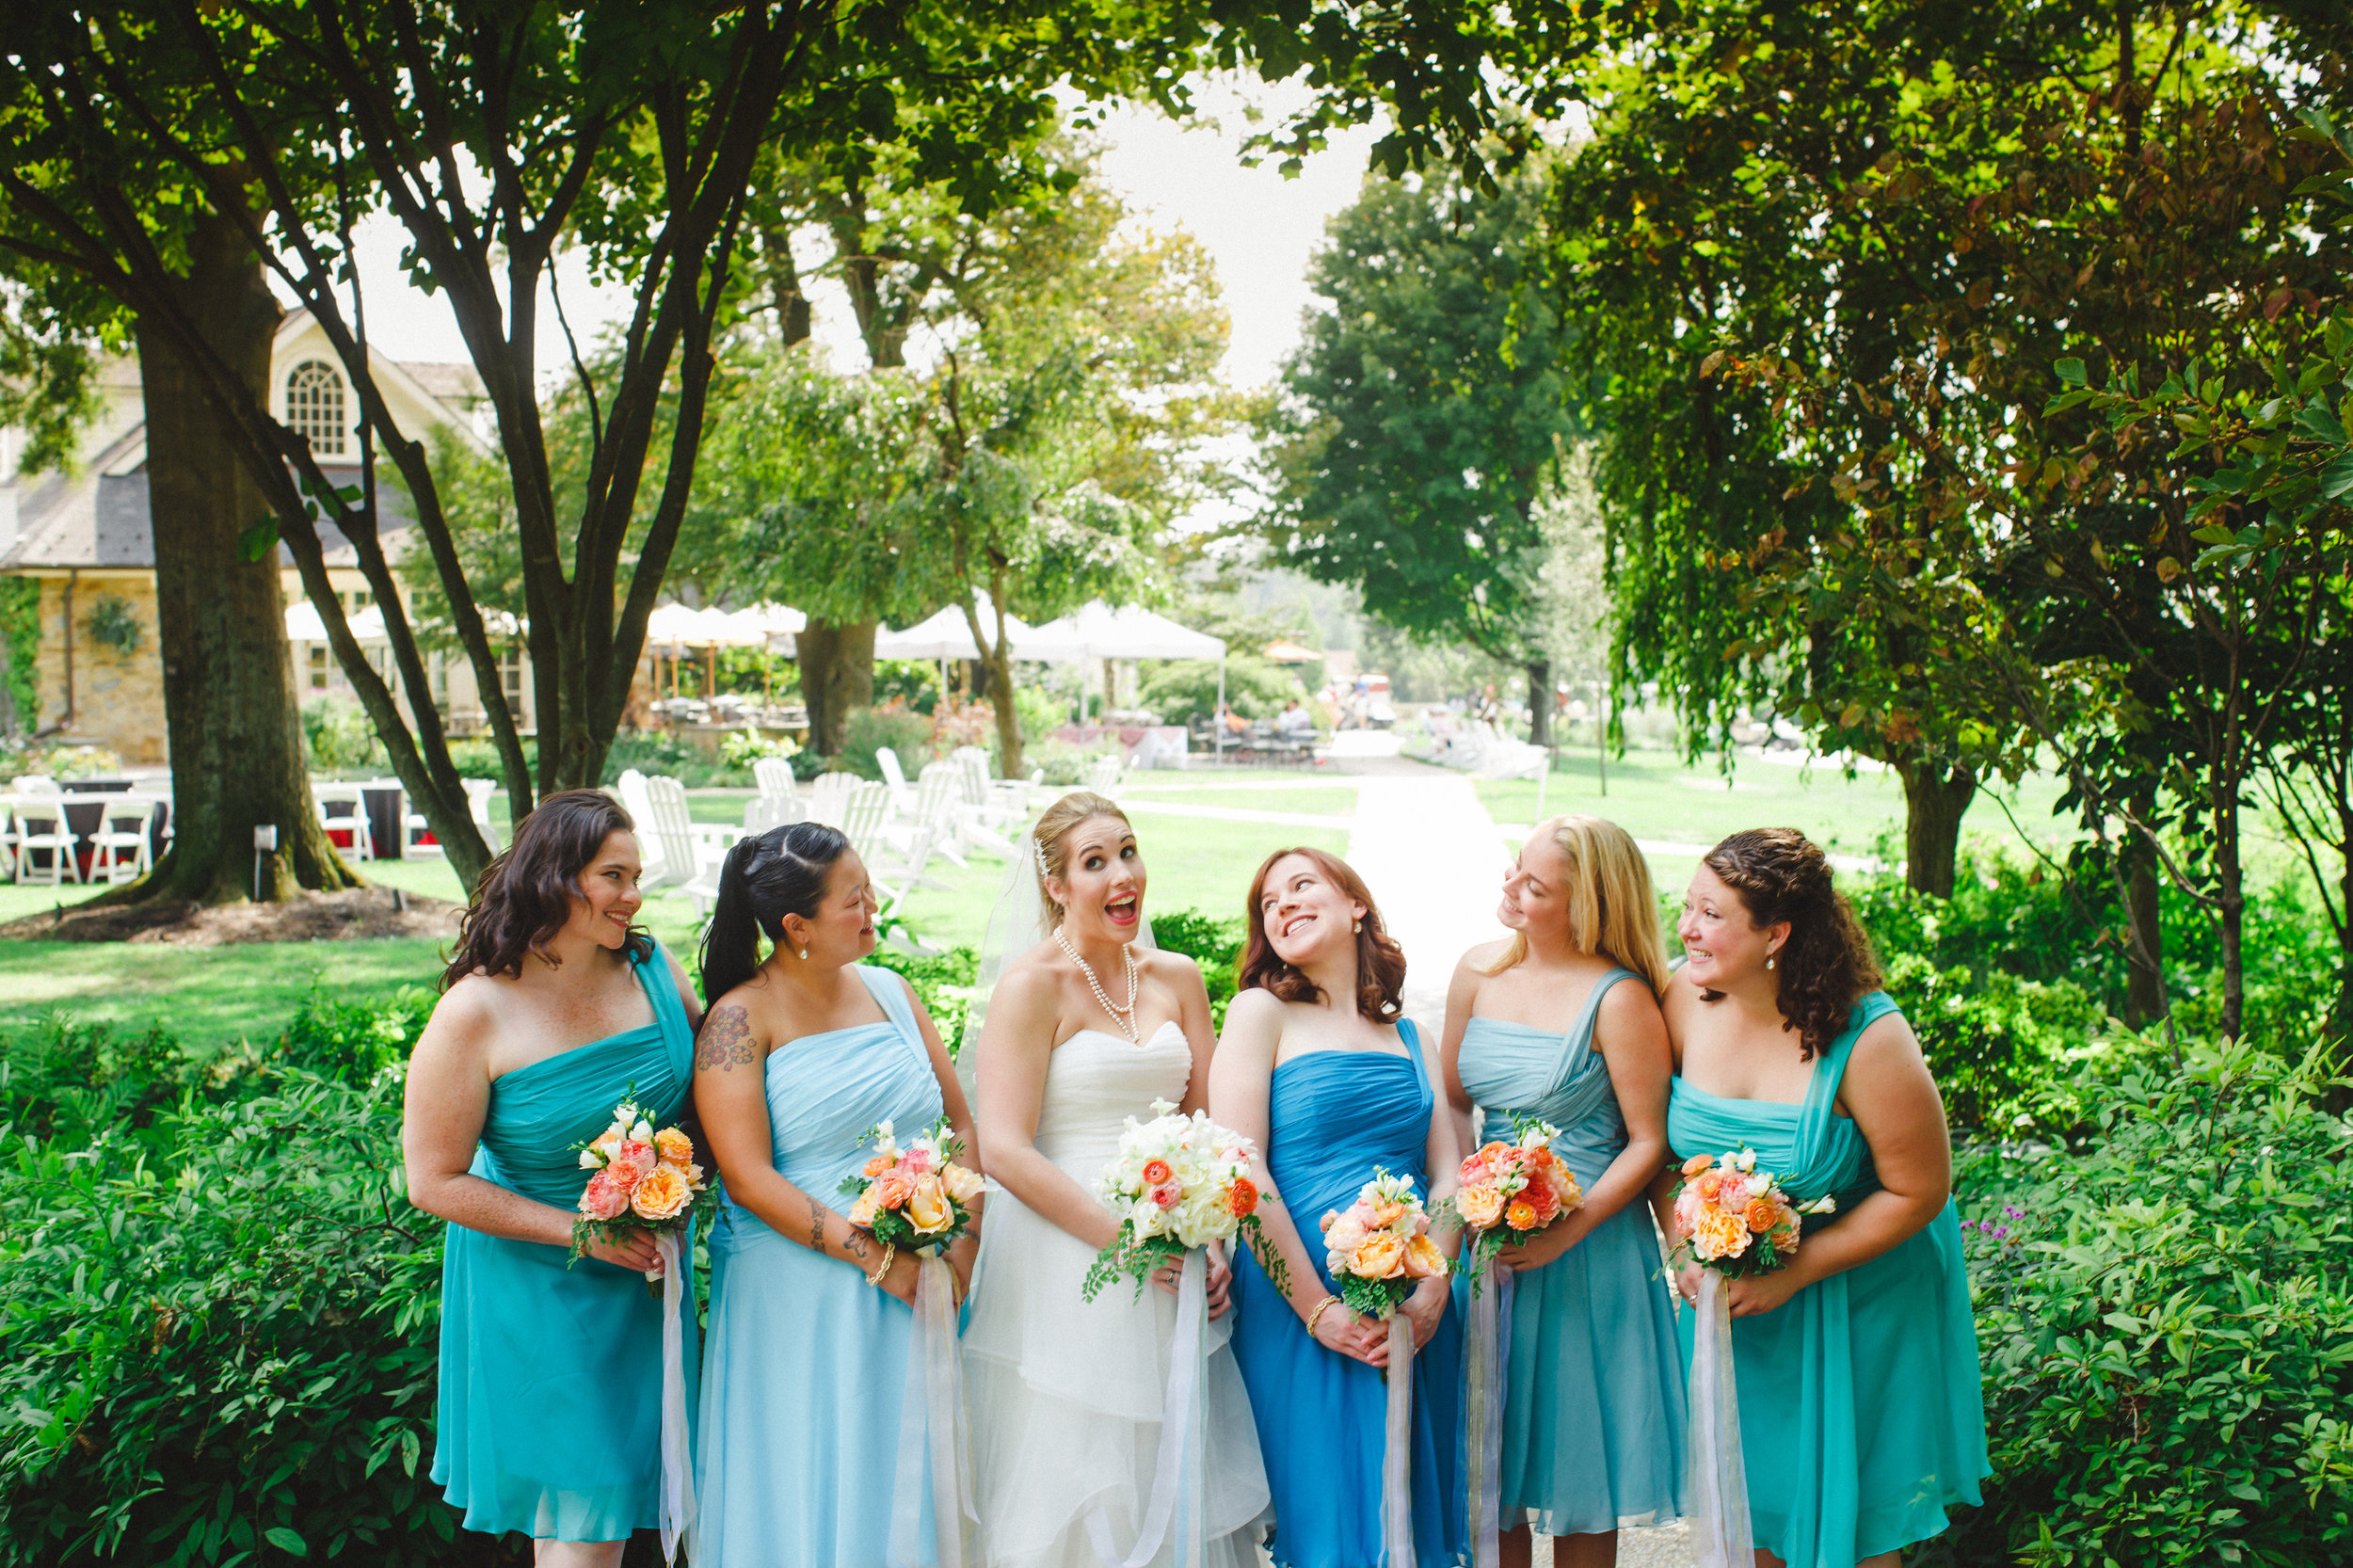 Vness-Photography-Chevy-Chase-Country-Club-A&R-Wedding-219.jpg